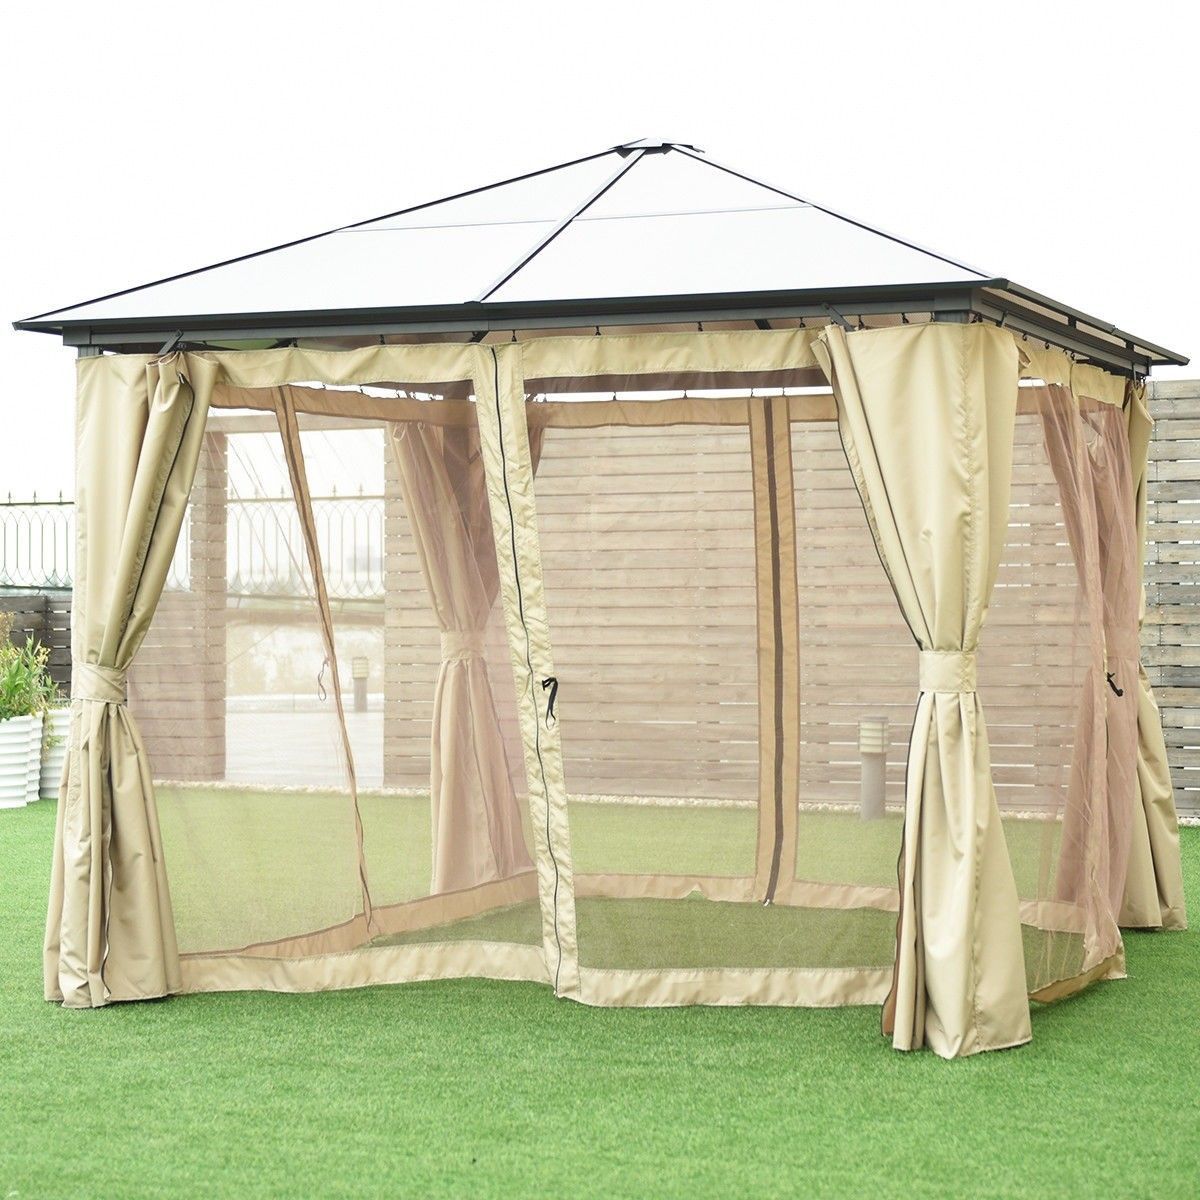 13 X 10 Gazebo Canopy Shelter Patio Party Tent Gazebo Canopy Gazebo Patio Gazebo